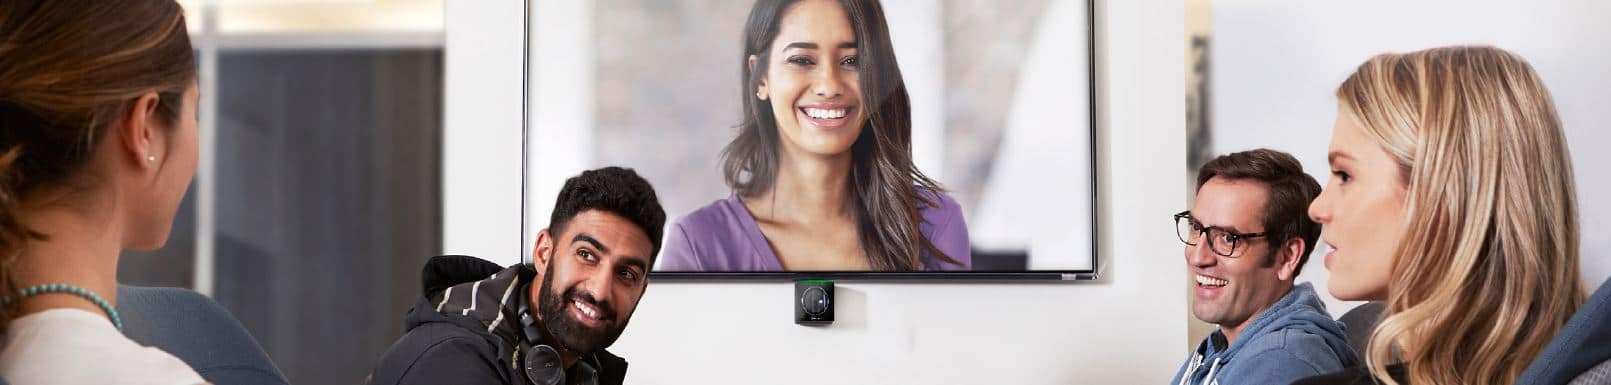 Introducing the Poly G7500 4k Ultra-HD Video Conference System